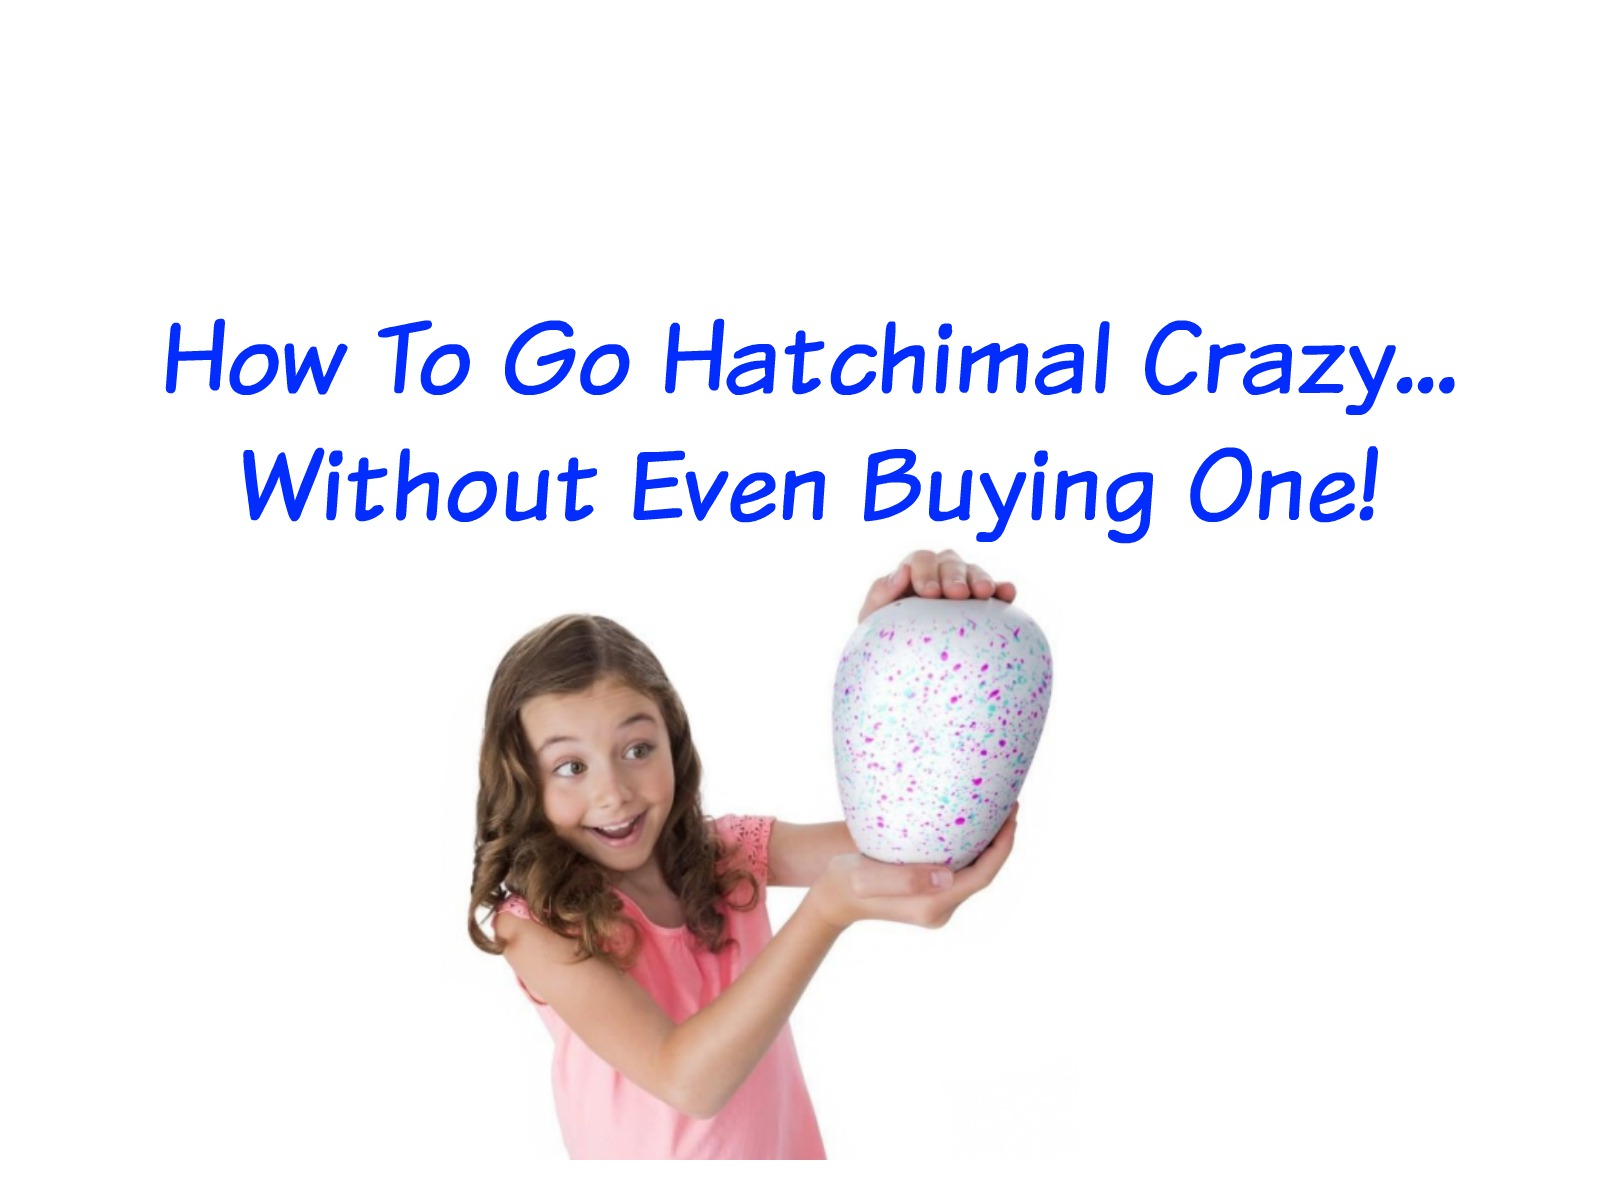 How To Go Hatchimal Crazy… Without Even Buying One!